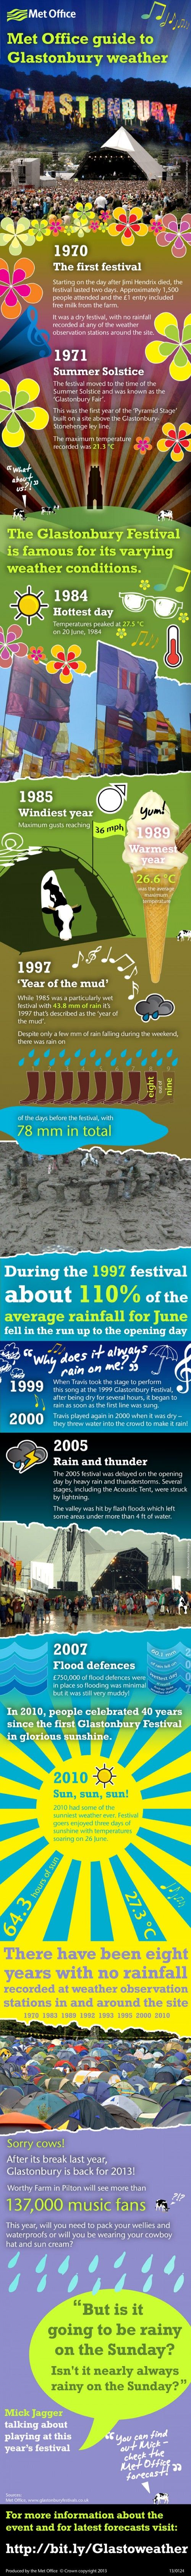 Met Office Guide to Glastonbury Weather – Infographic on http://www.bestinfographic.co.uk